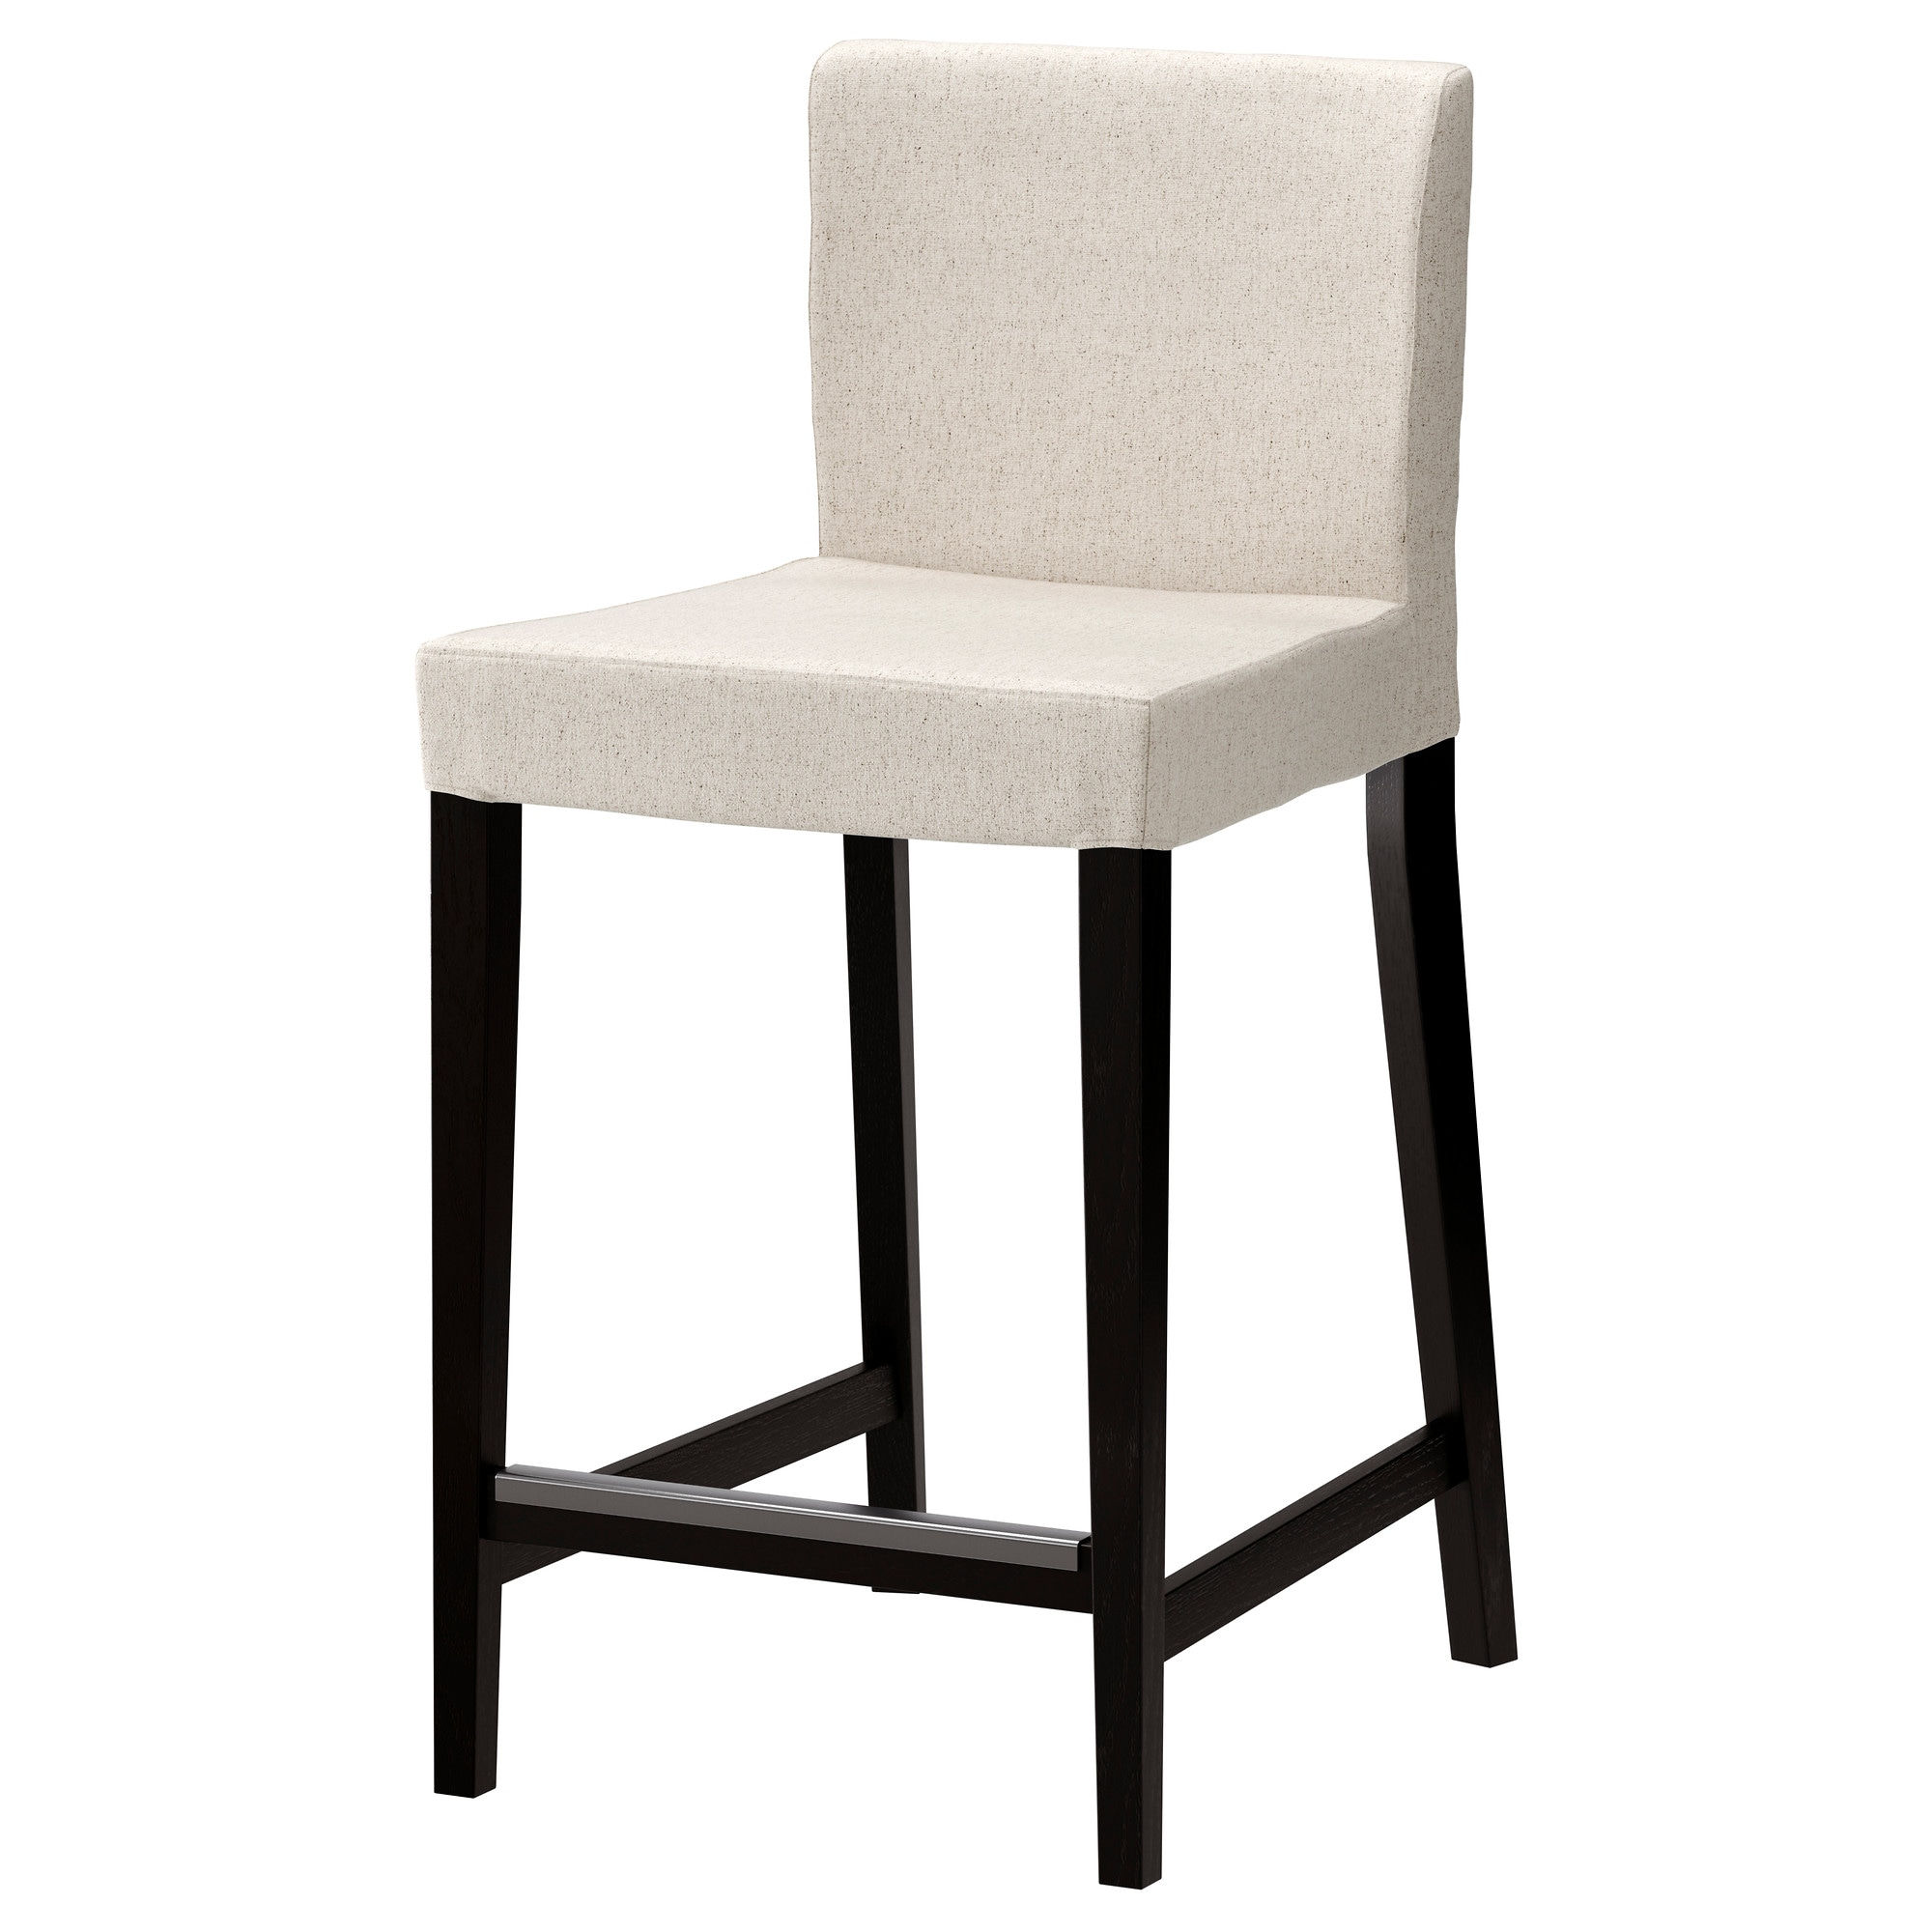 HENRIKSDAL Bar Stool With Backrest, Brown Black, Linneryd Natural Tested  For: 220